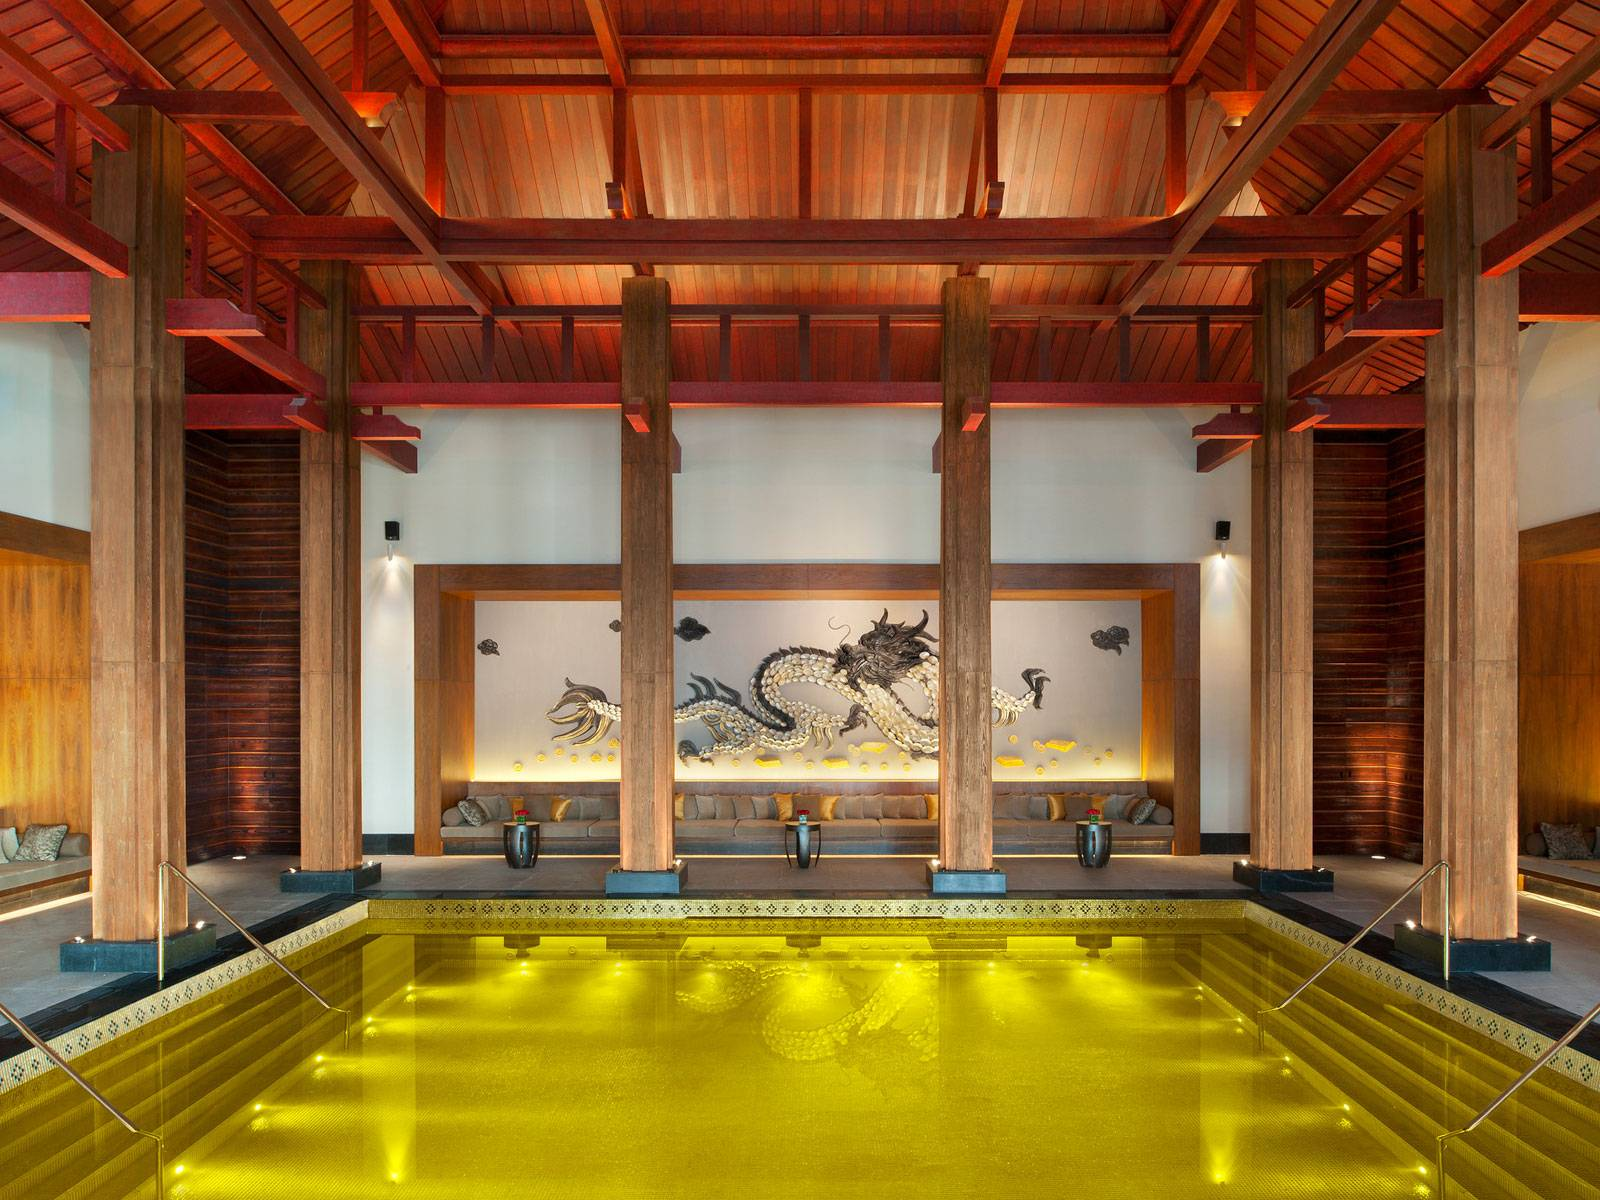 St. Regis Gold Energy Pool, Tibet